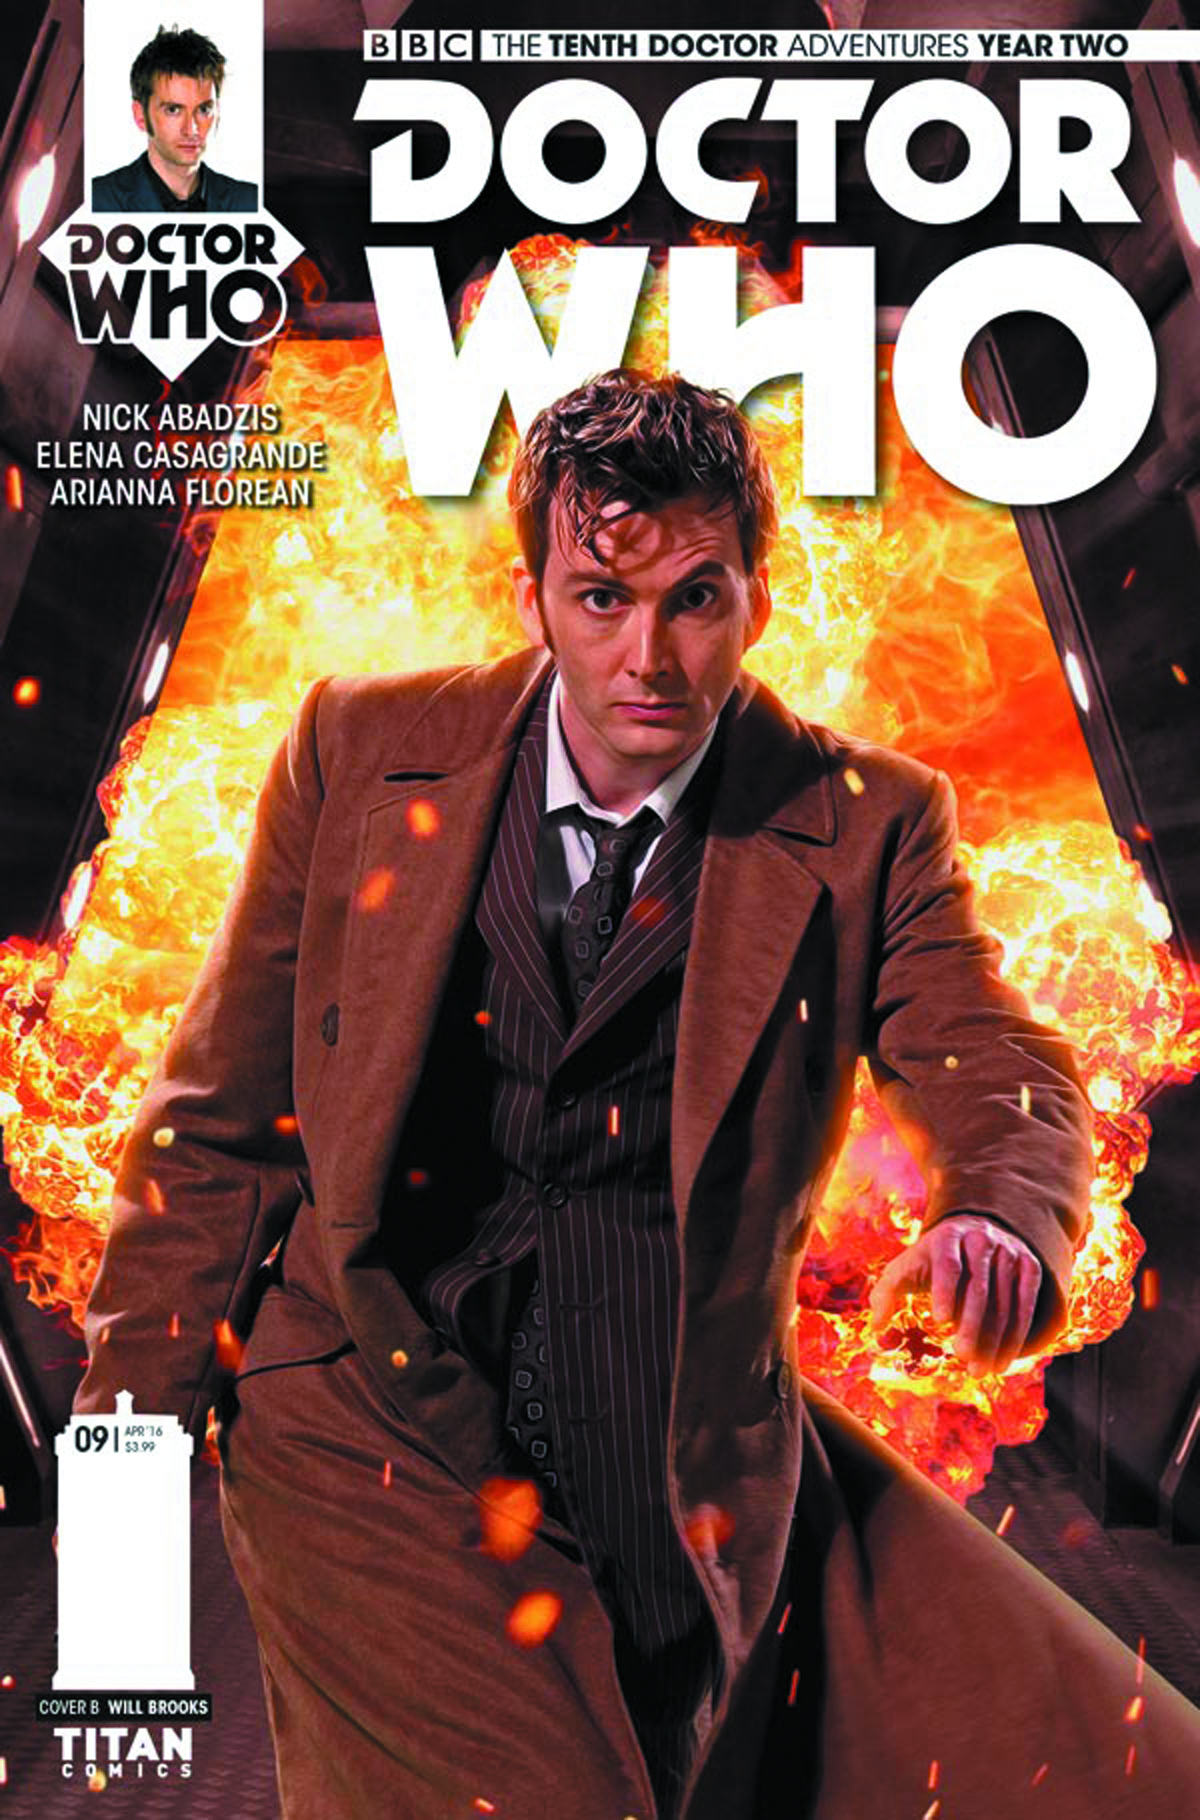 DOCTOR WHO 10TH YEAR TWO #9 CVR B PHOTO